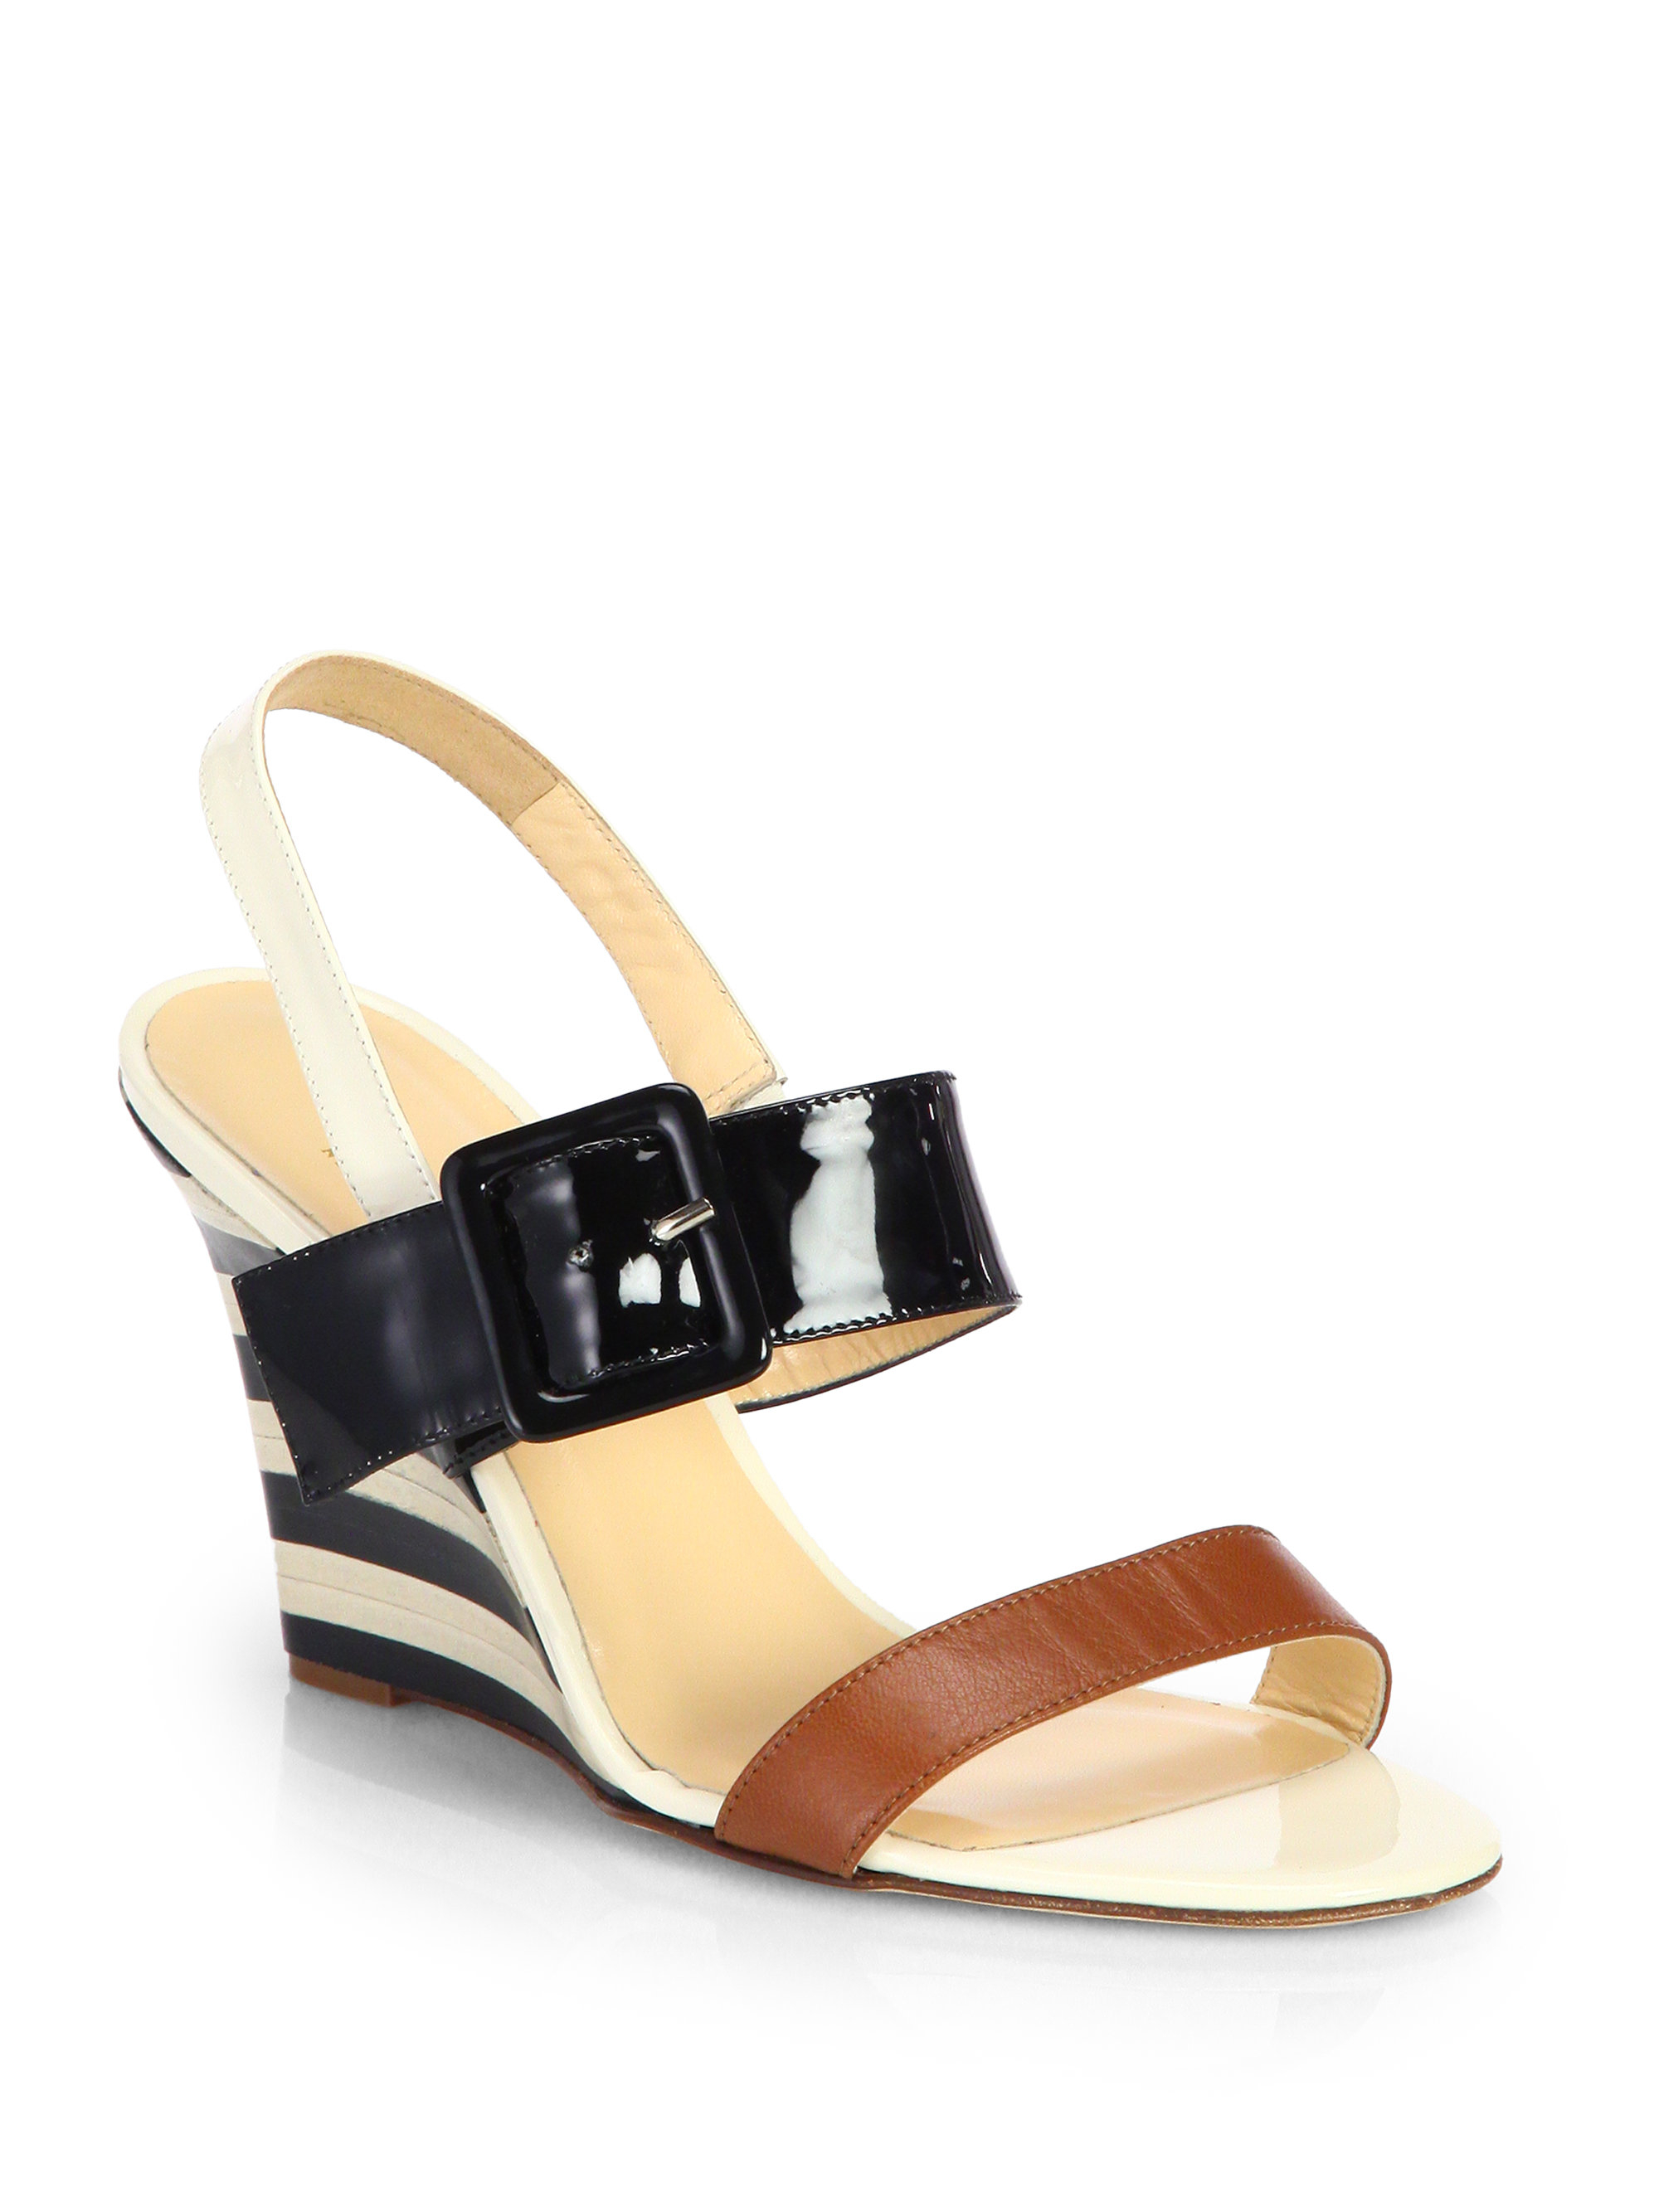 Kate Spade Isola Patent Leather Wedge Sandals In Black